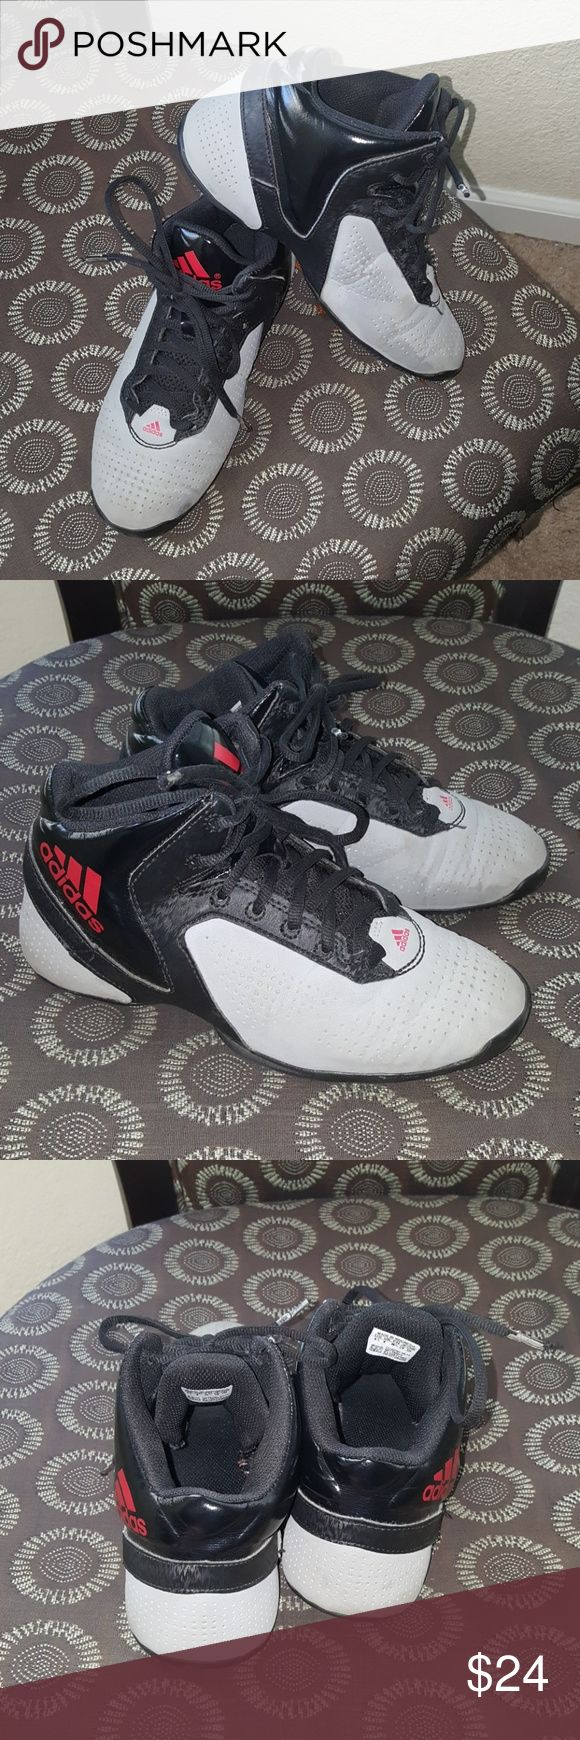 Adidas basketball shoes Gray, black, red Adidas basketball shoes. Size 4 and 1/2 in boys. Gently used. Good condition. adidas Shoes Sneakers